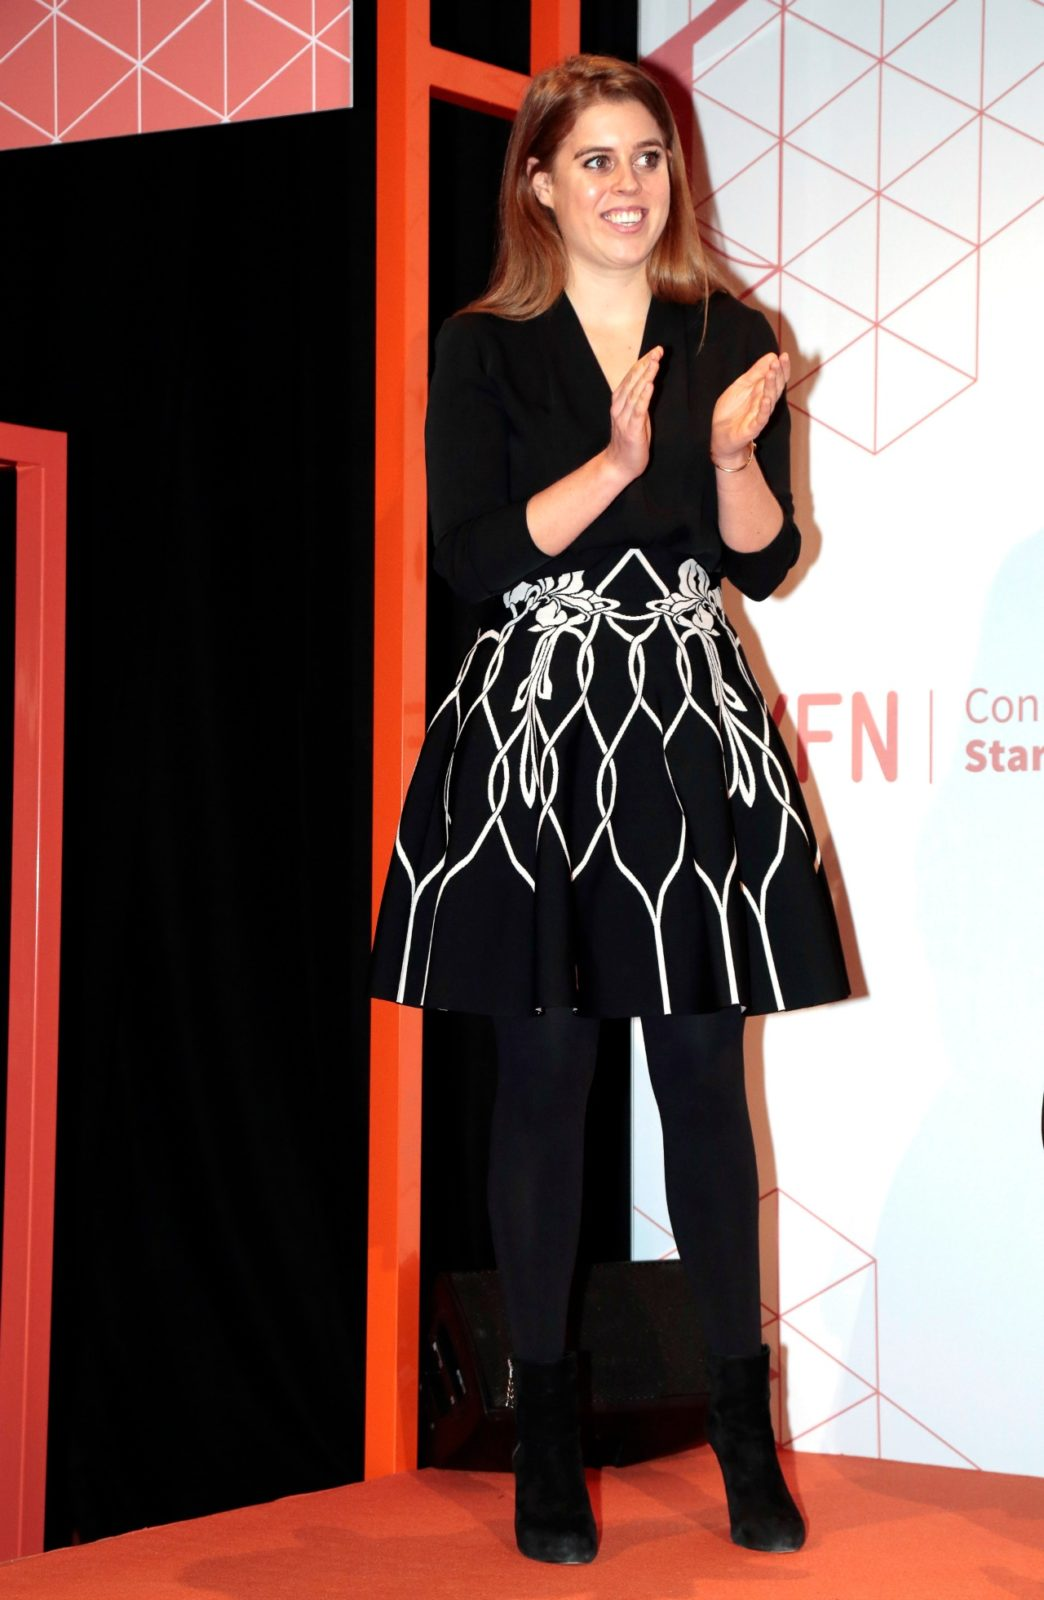 Princess Beatrice made a glamorous appearance at theGSMA Mobile World Congress on Wednesday in Barcelona. Source: Getty